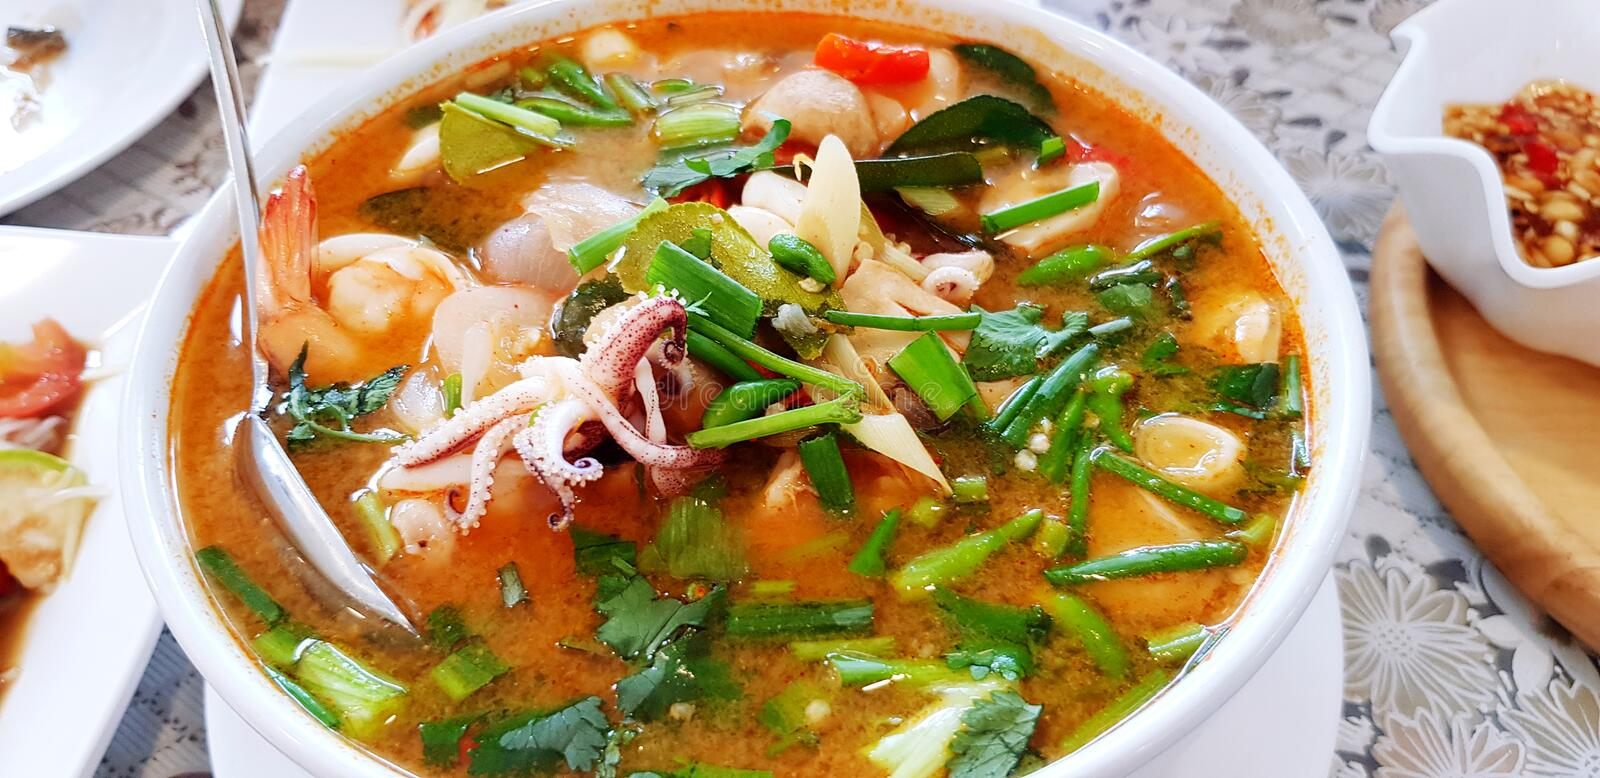 Close up hot seafood spicy soup with vegetable and spoon in white bowl on dining table for lunch time at restaurant. T royalty free stock photography